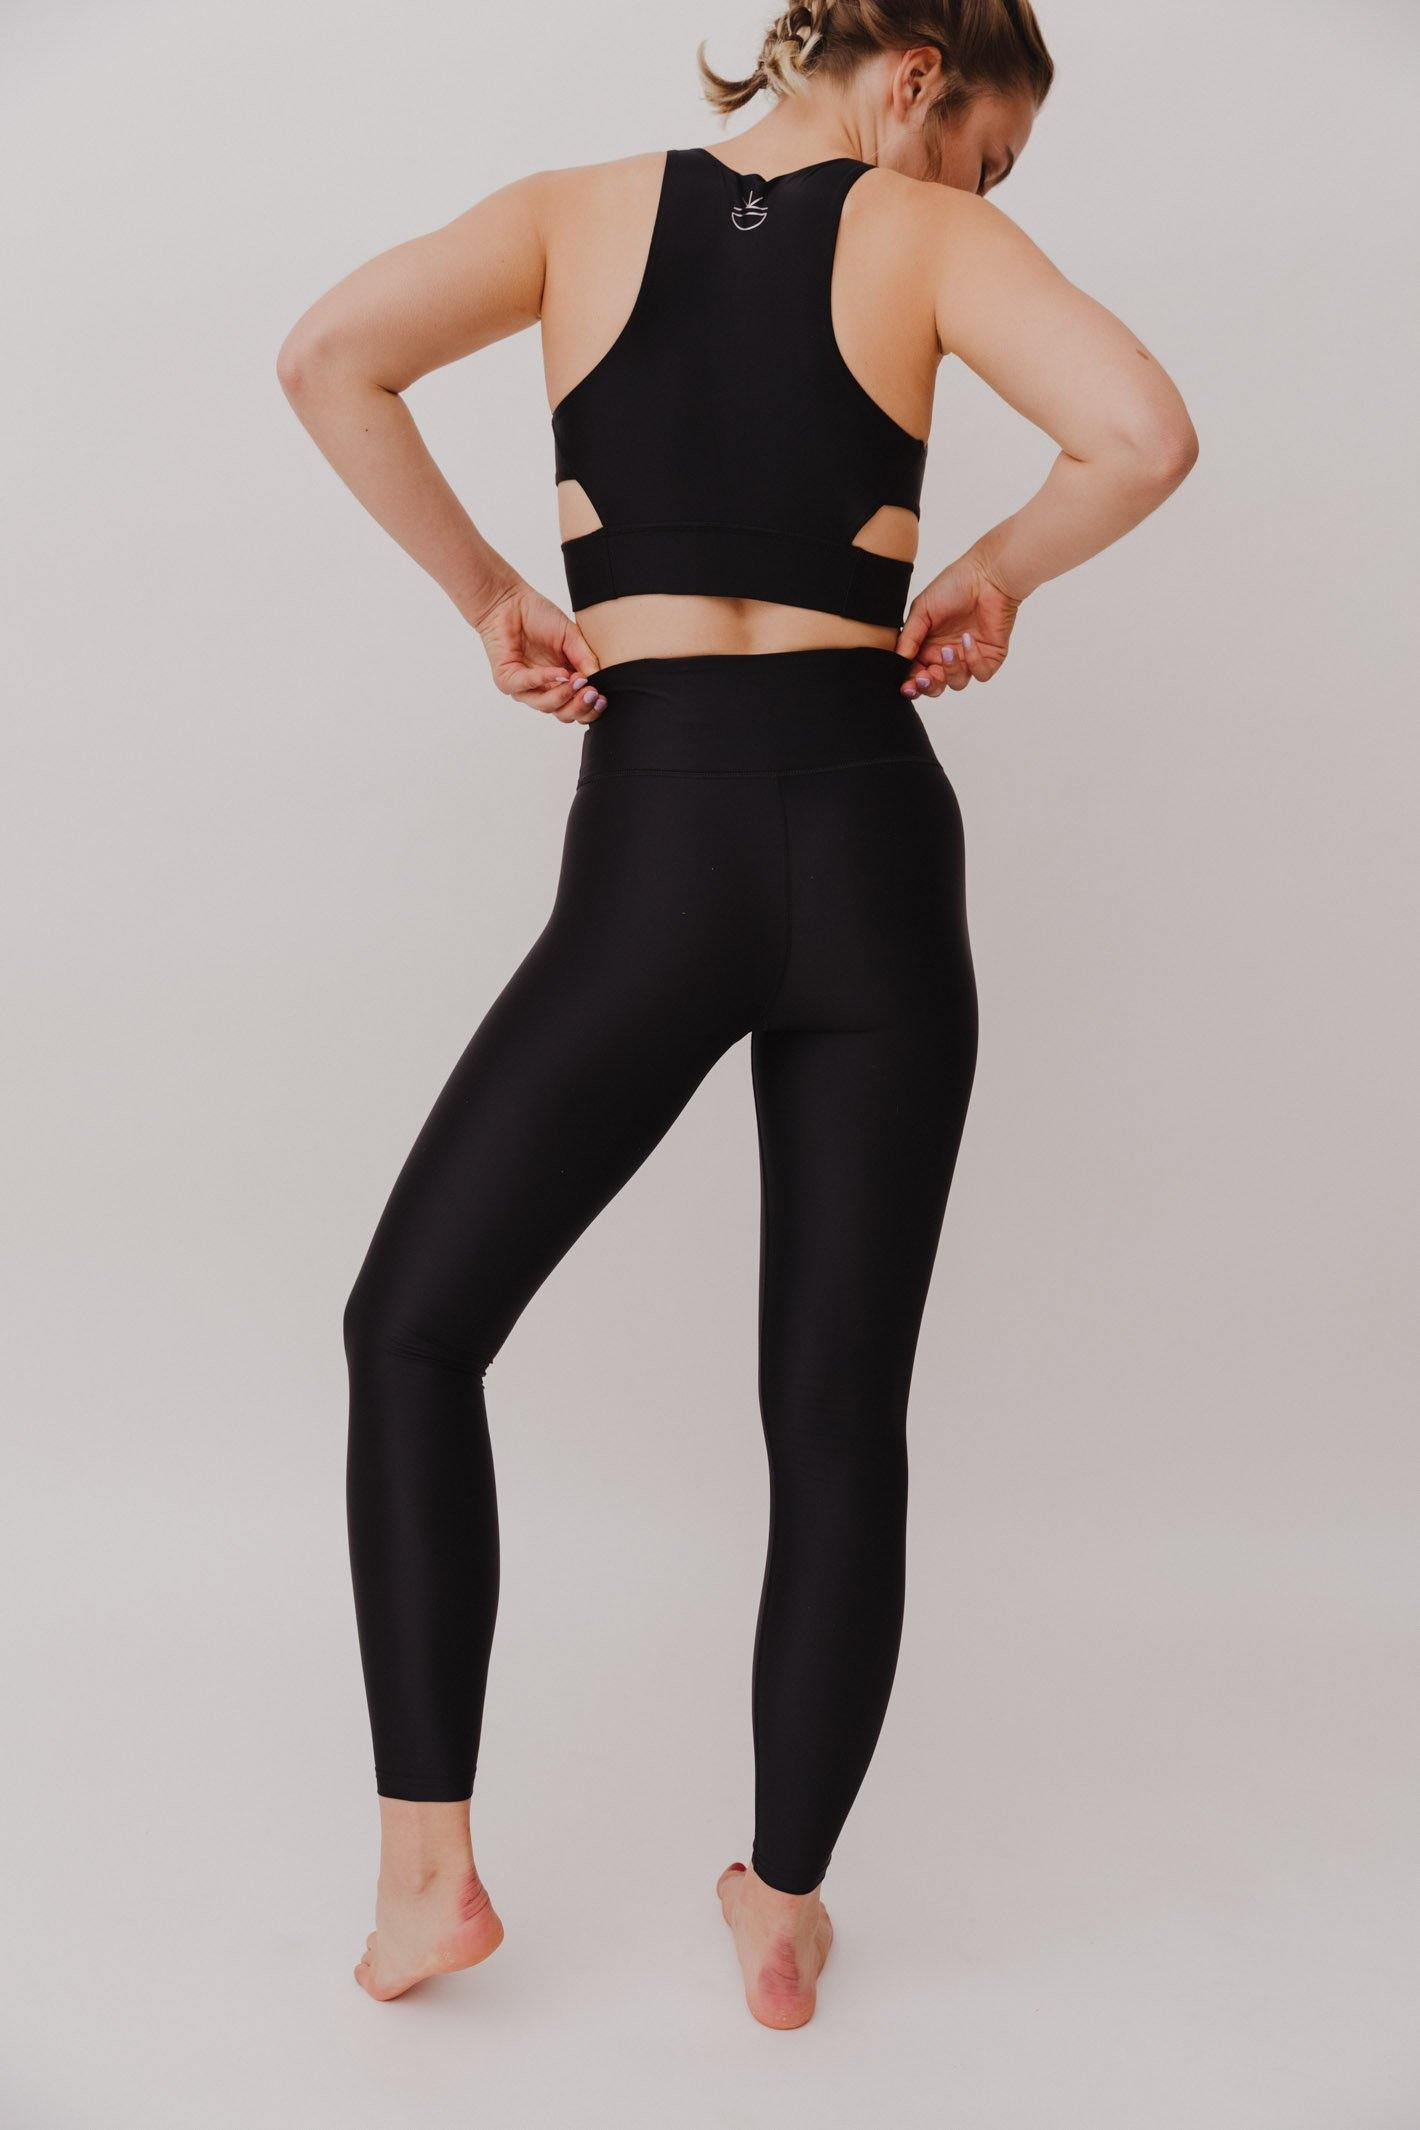 BESONNEN Walk Free Leggings - Color:Schwarz